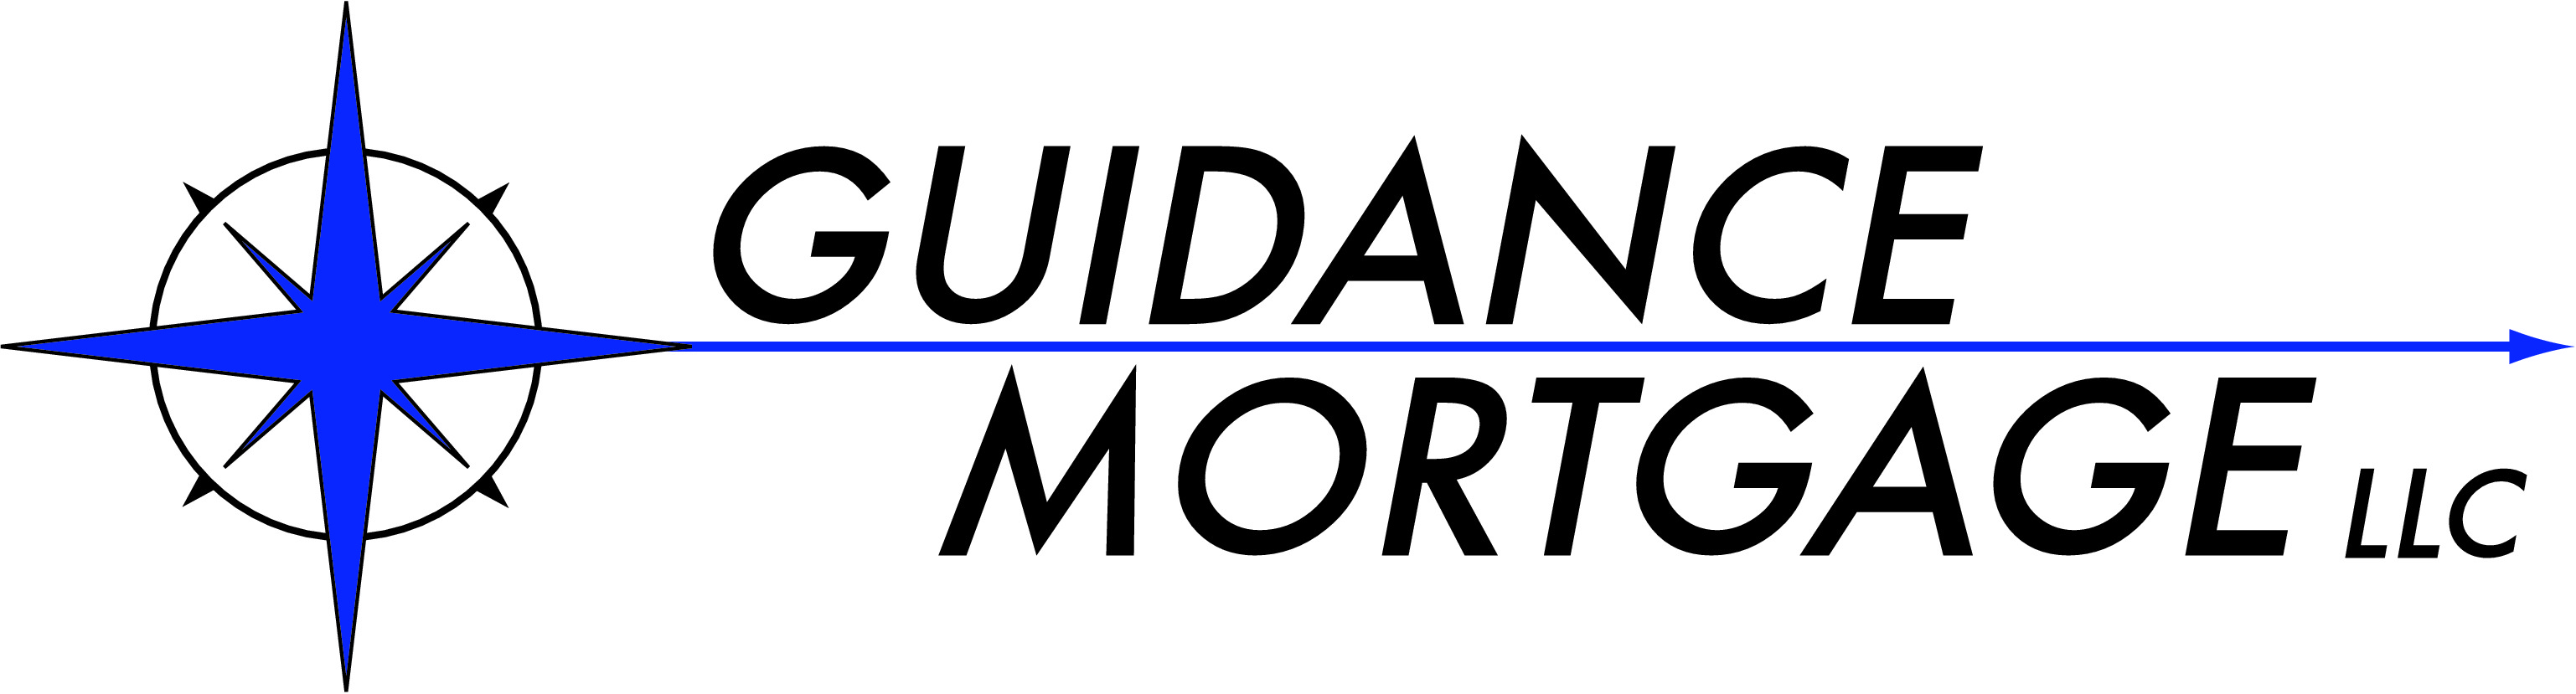 Guidance Mortgage